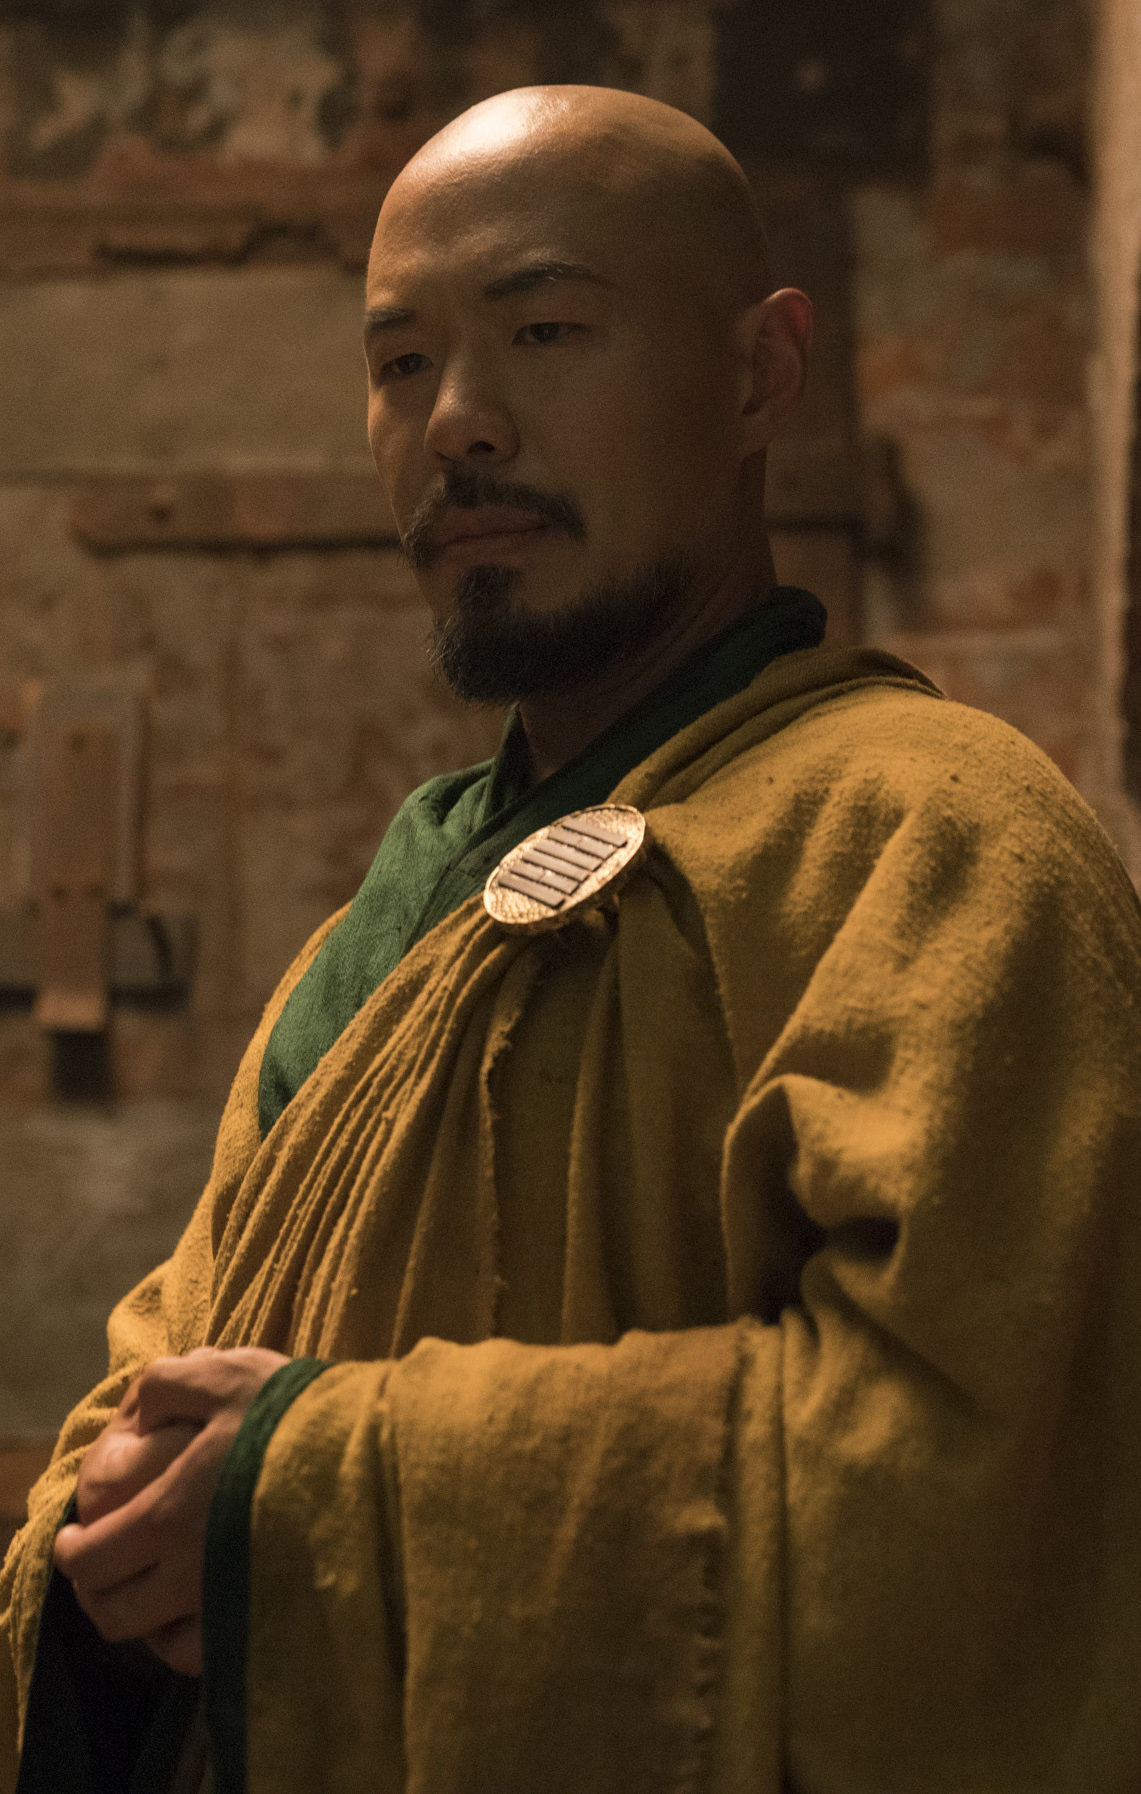 Lei-Kung (Earth-199999) from Marvel's Iron Fist Season 1 6 002.png